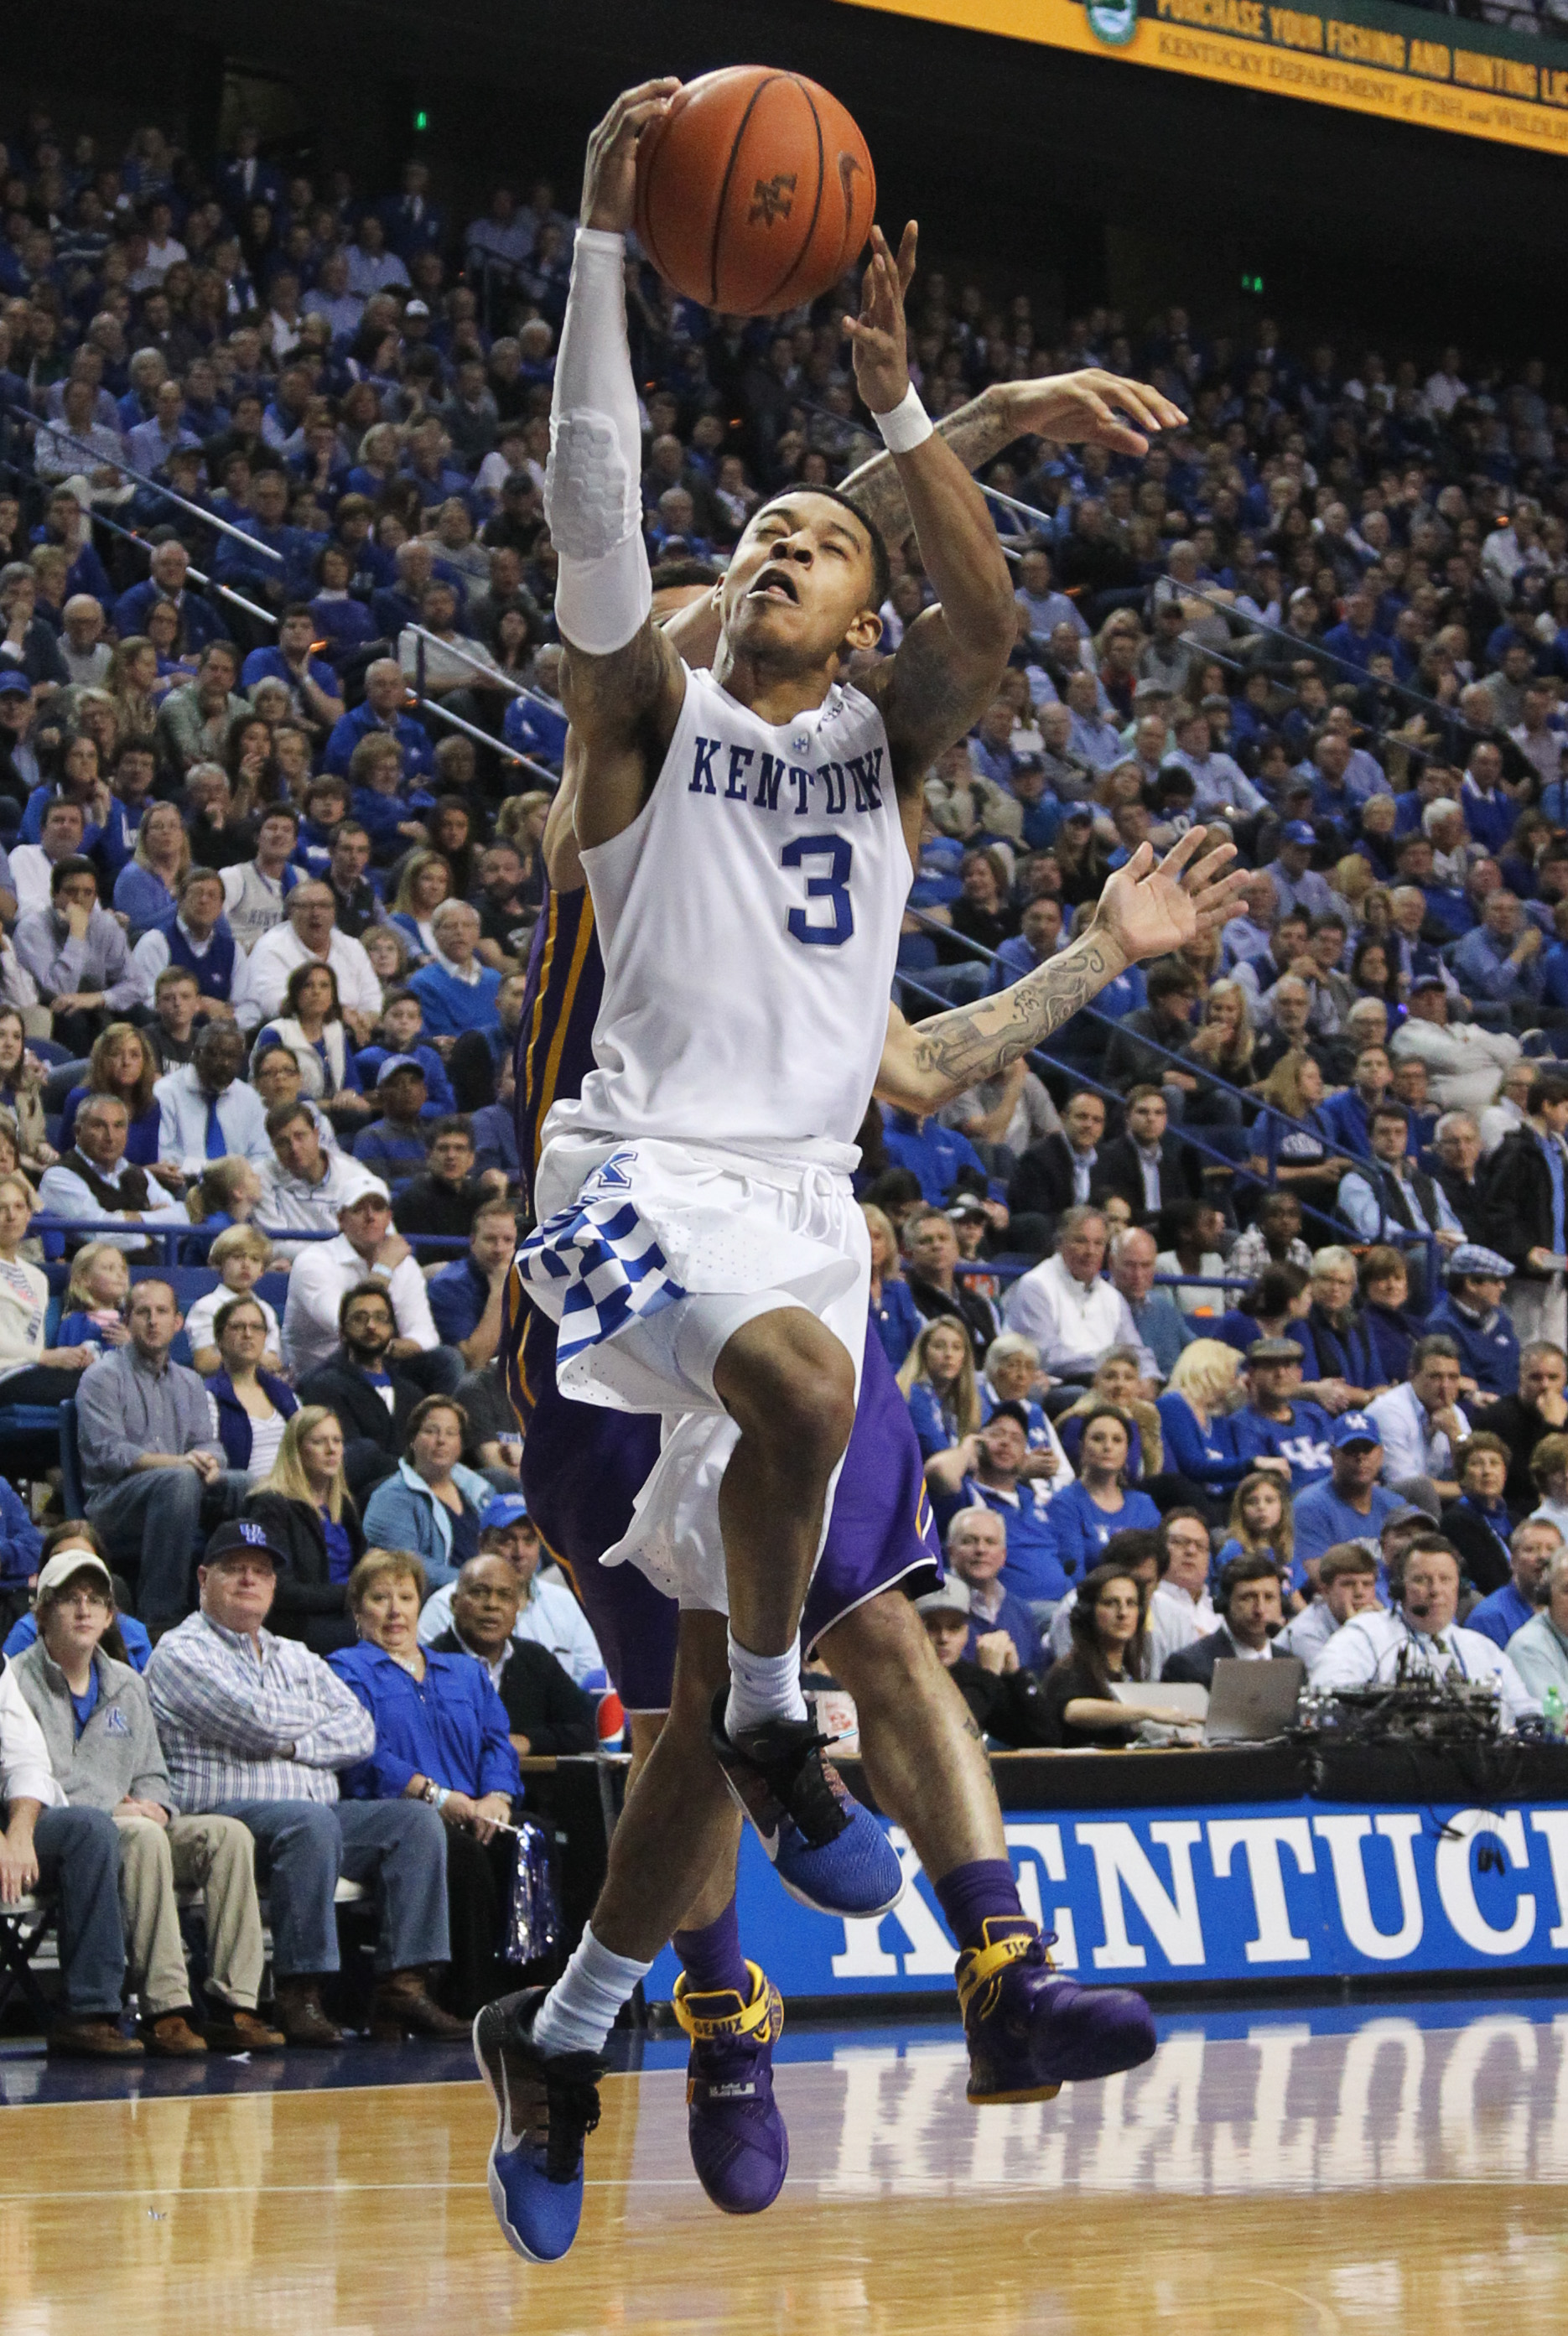 Kentucky's Tyler Ulis (3) is fouled by LSU's Josh Gray during the second half of an NCAA college basketball game Saturday, March 5, 2016, in Lexington, Ky. Kentucky won 94-77. (AP Photo/James Crisp)